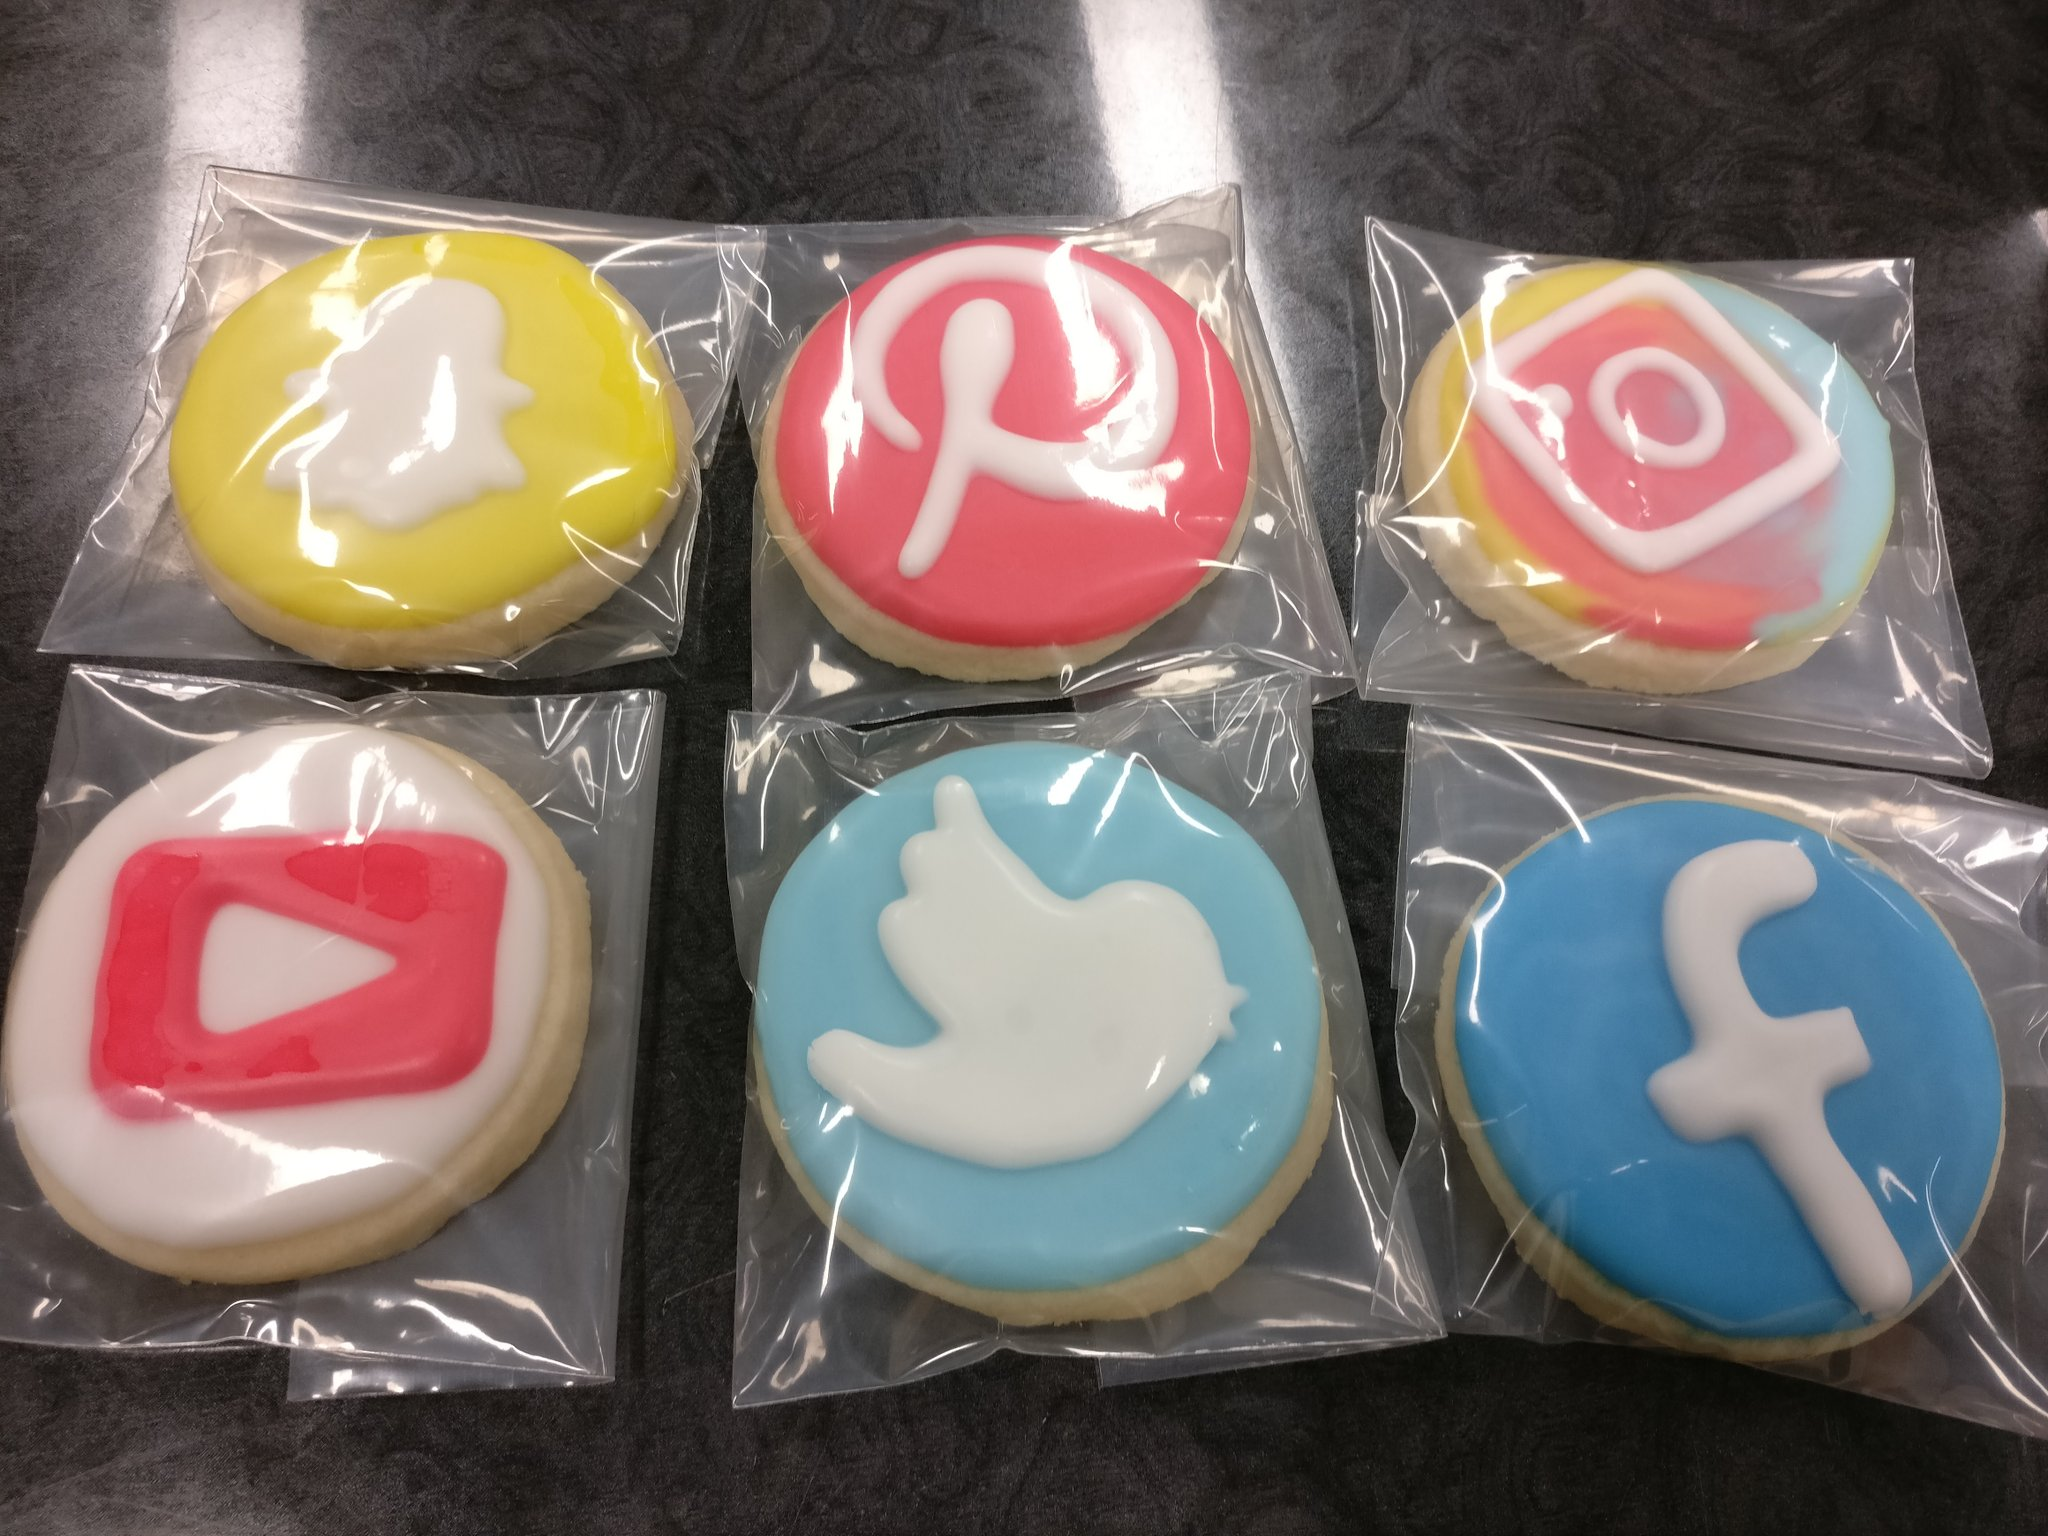 Delicious cookies at Higher Ed Social Media conference #hesm16 #uoft #snapchat #fb #twitter #IG #youtube #Pinterest @IMIUofT @ManagementUTM https://t.co/8sPPguv5wd